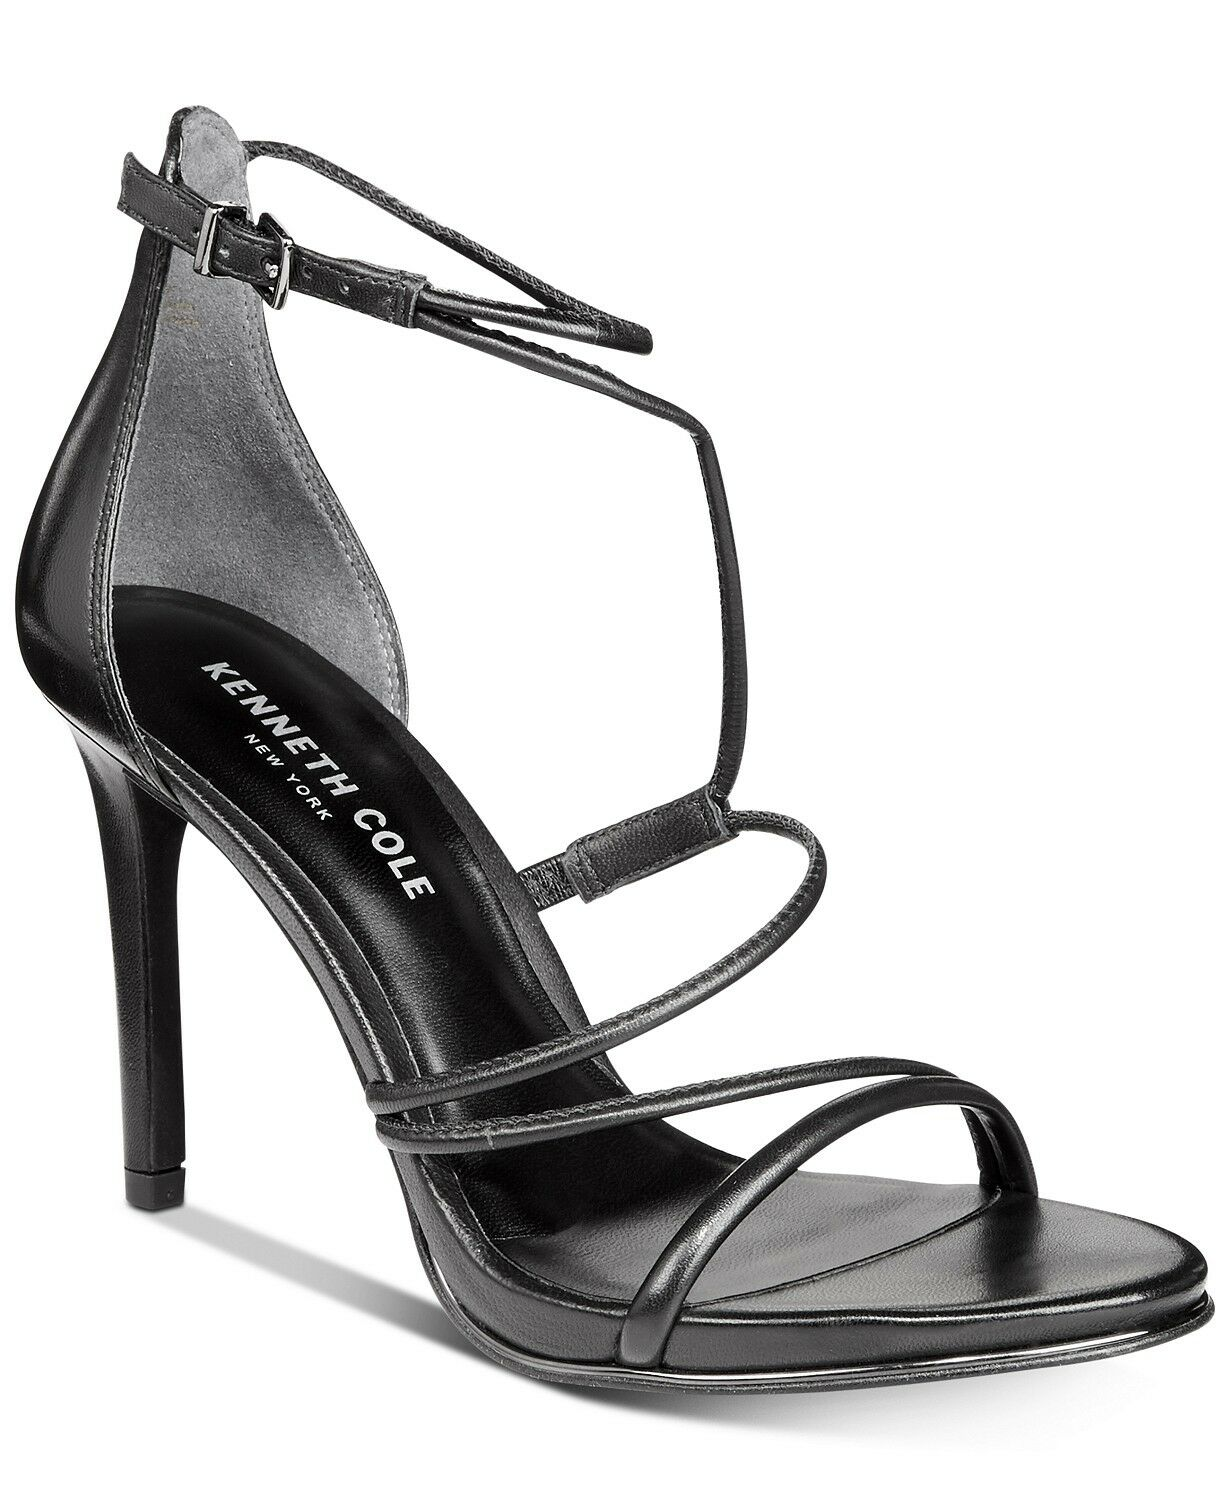 Kenneth Cole New York Women's Bryanna Strappy Dress Sandals Size 6 Black Leather